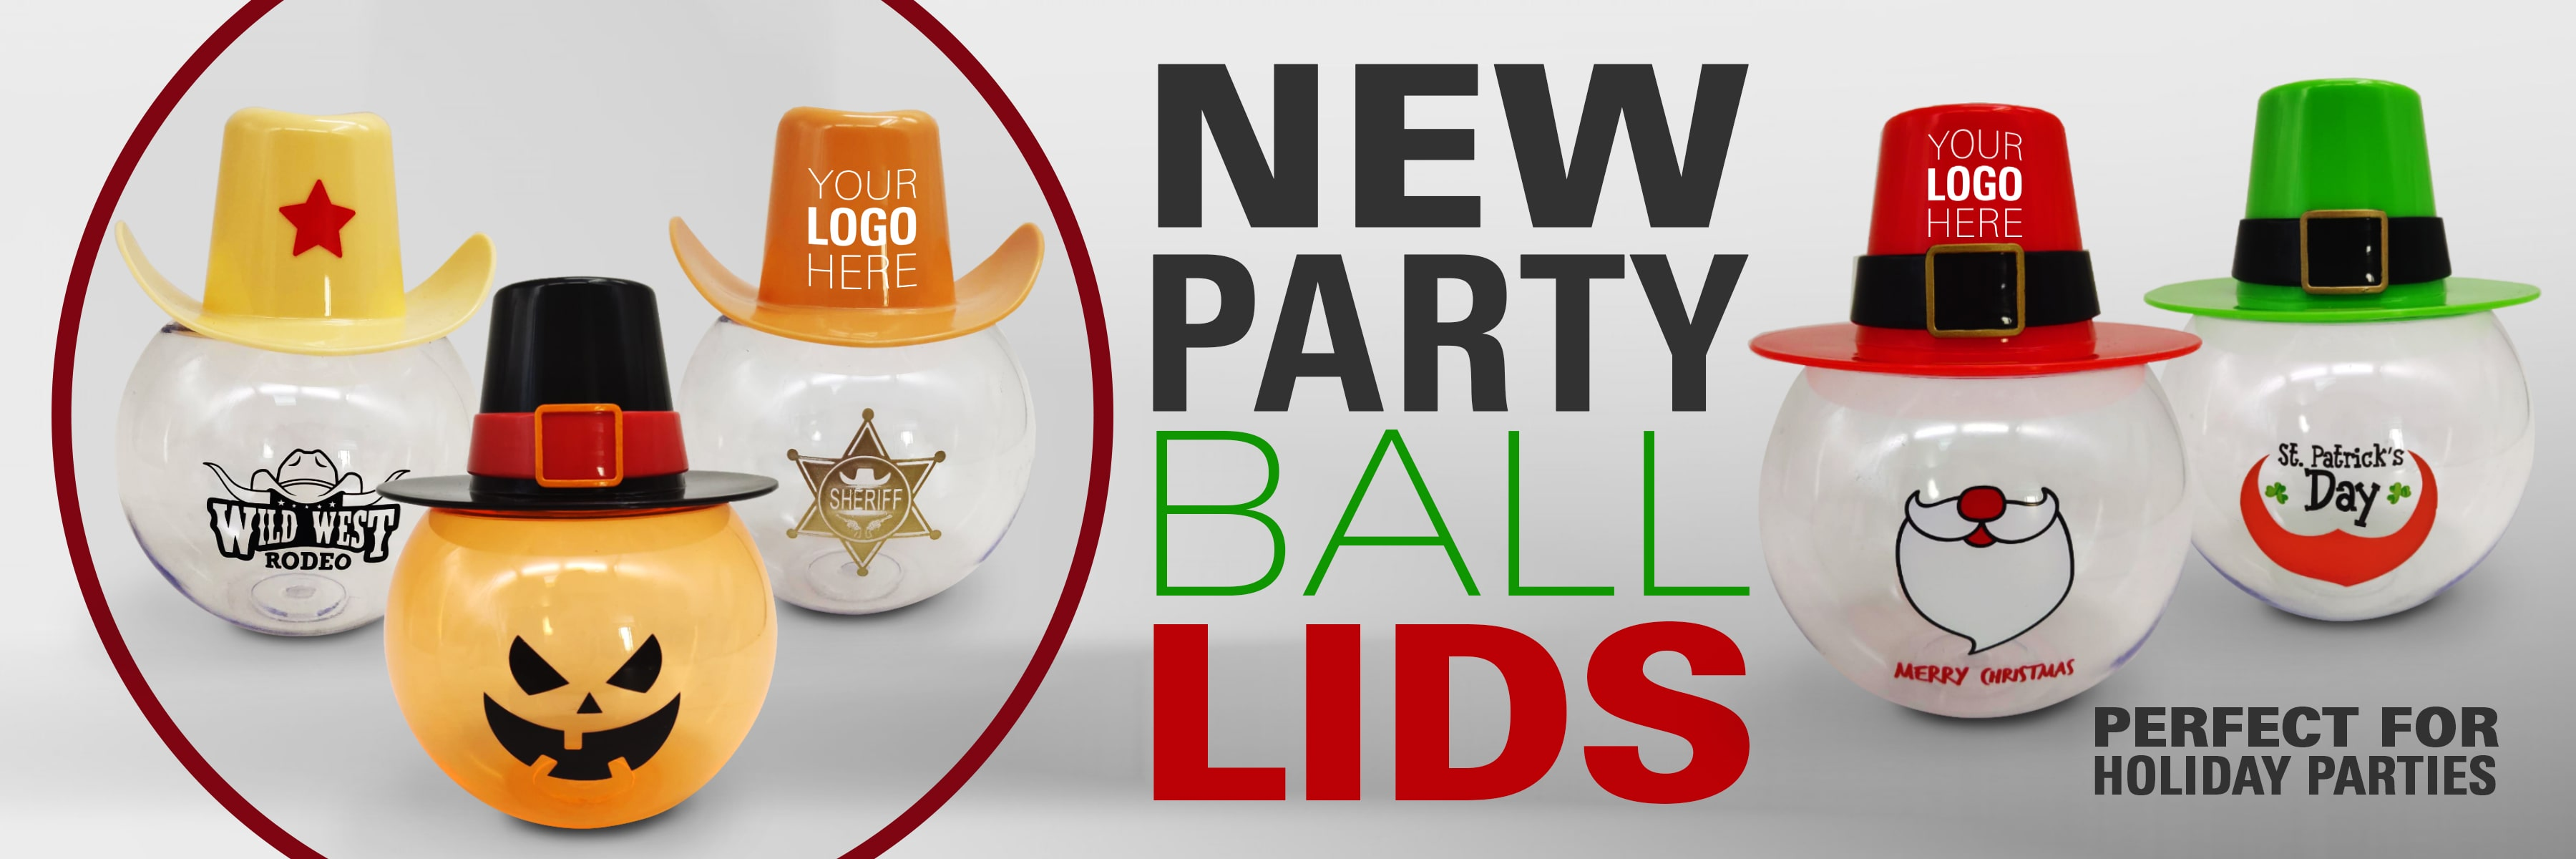 party ball lids